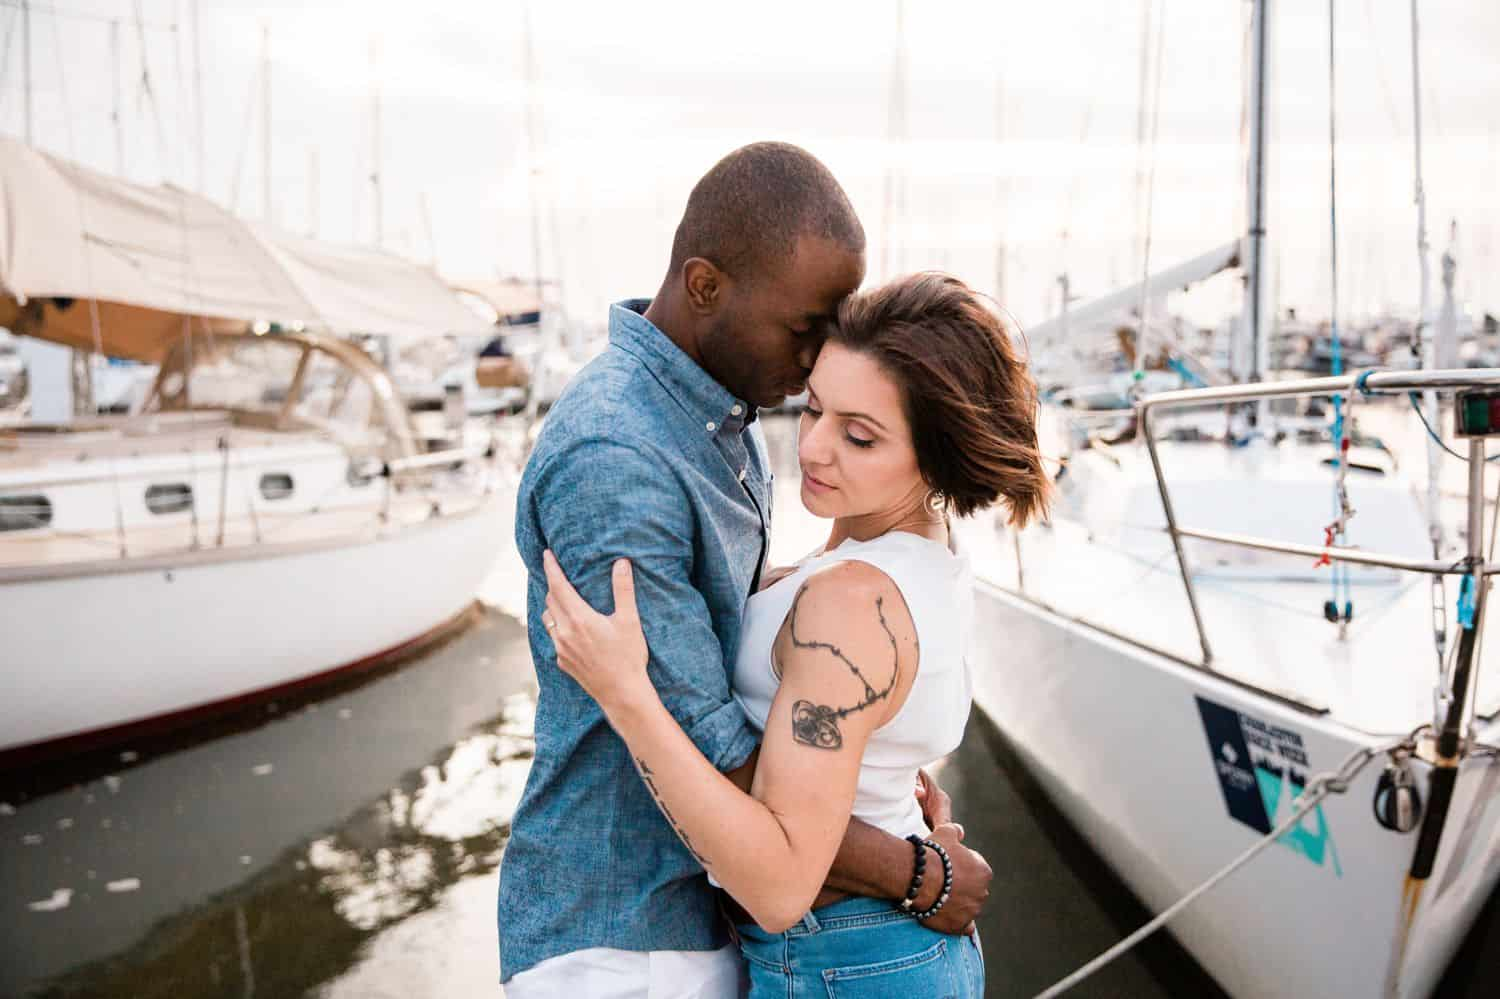 A Black man in a denim shirts and a White woman in a white shirt hold each other close on the dock of the bay